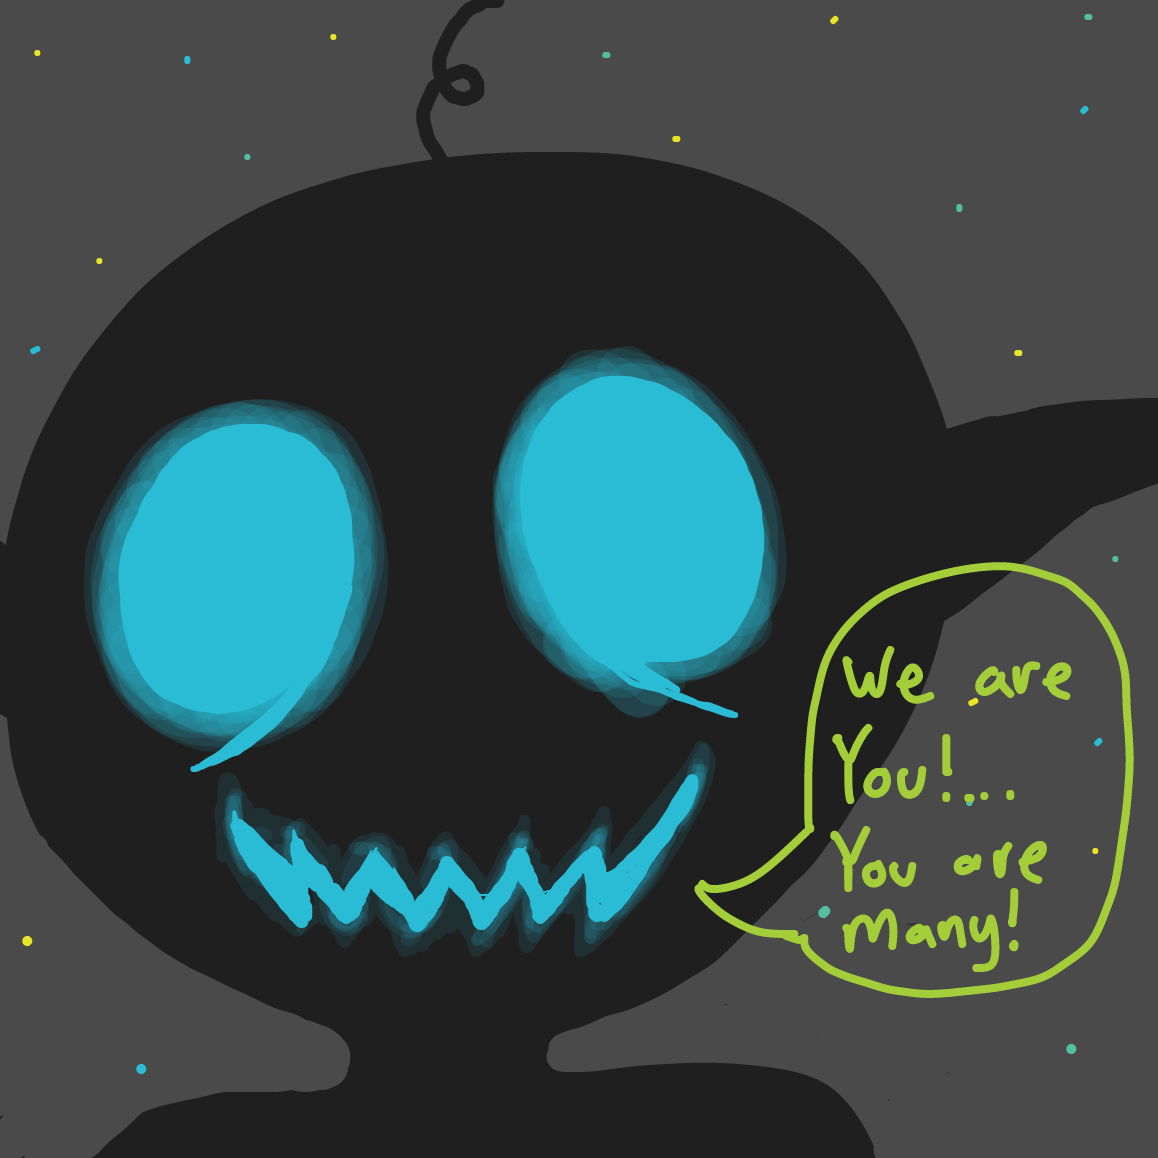 """You are many!"" - Online Drawing Game Comic Strip Panel by devryan"